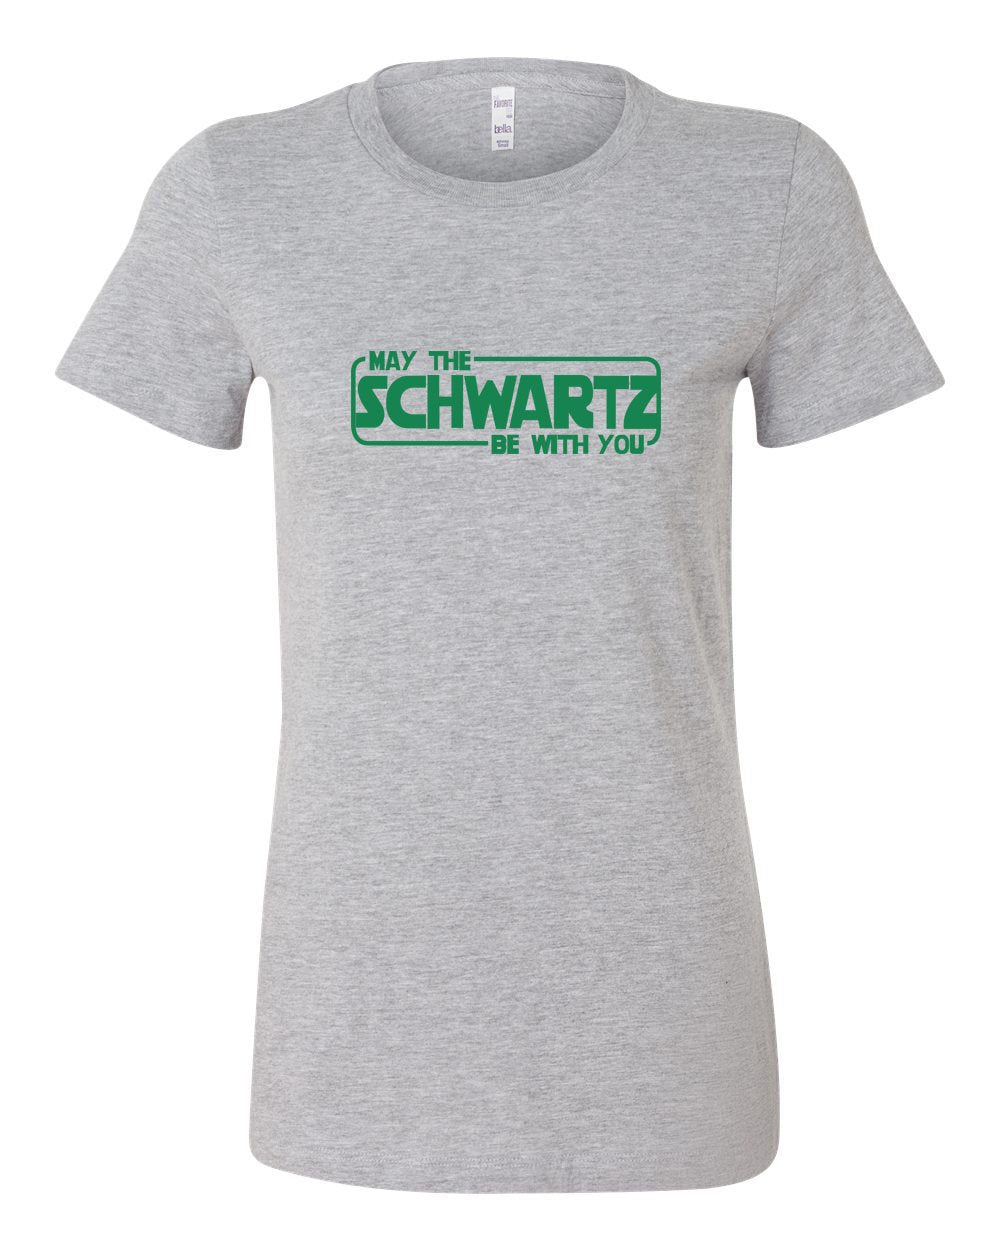 May The Schwartz Be With You LADIES Junior-Fit T-Shirt